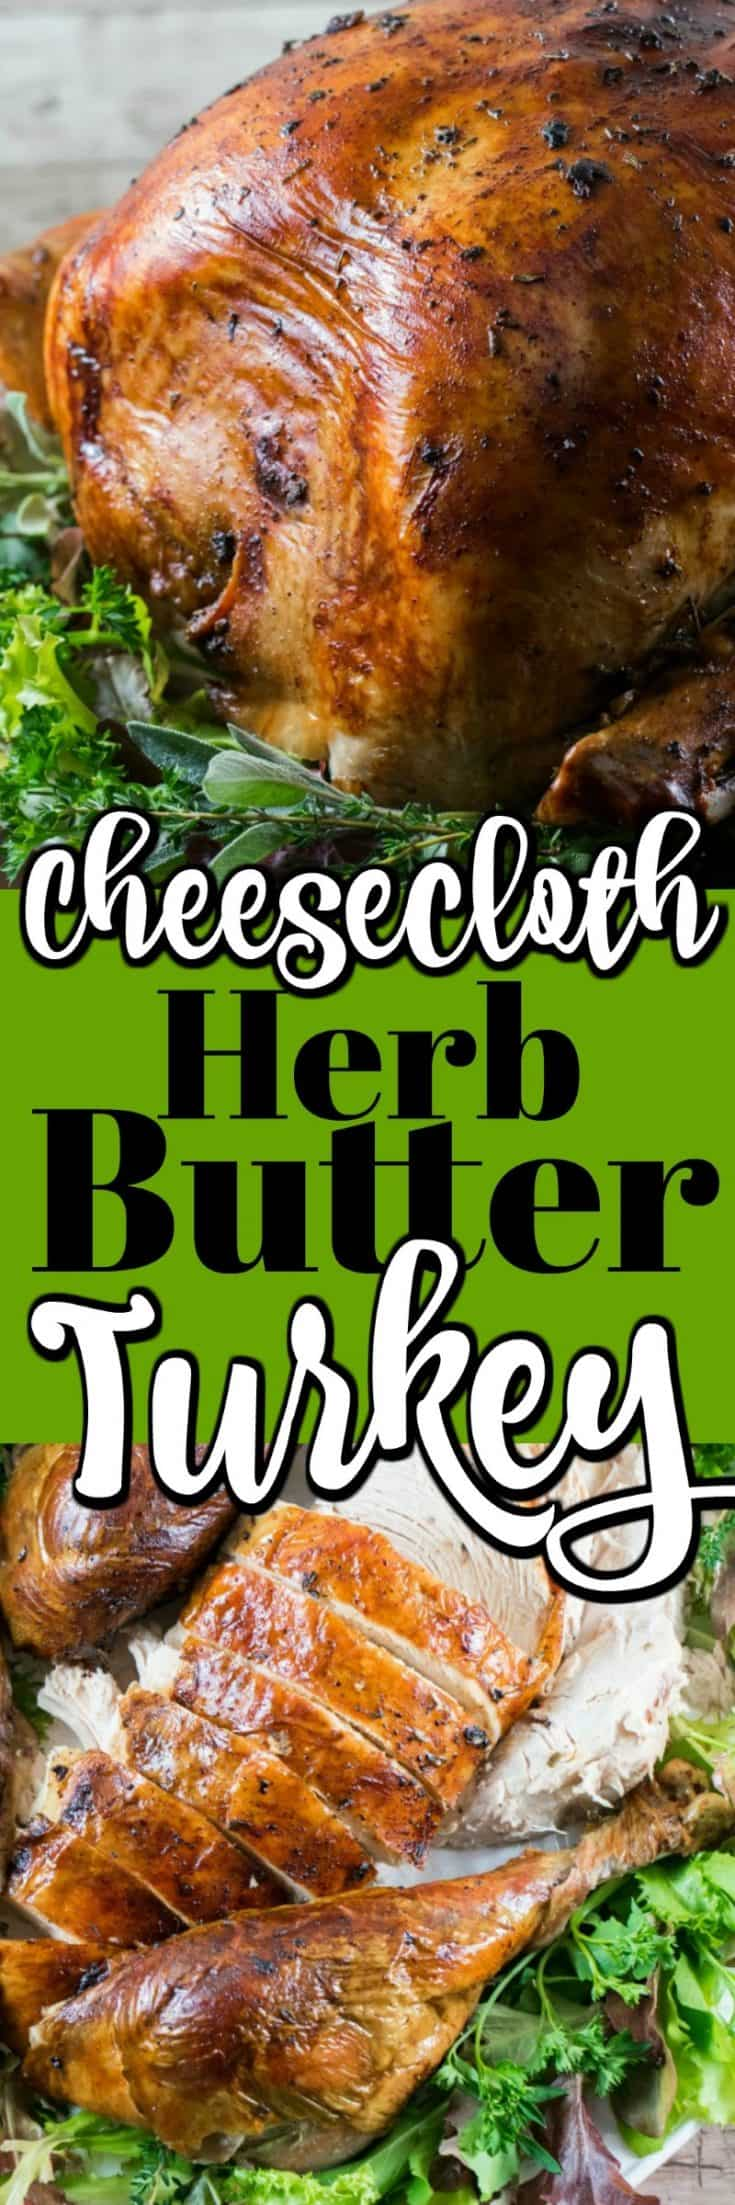 This Cheesecloth Herb Butter Turkey is perfect for the holidays!! You couldn't get a nicer roast!! #turkey #CdnTurkeyMonth #cheesecloth #herbbutter